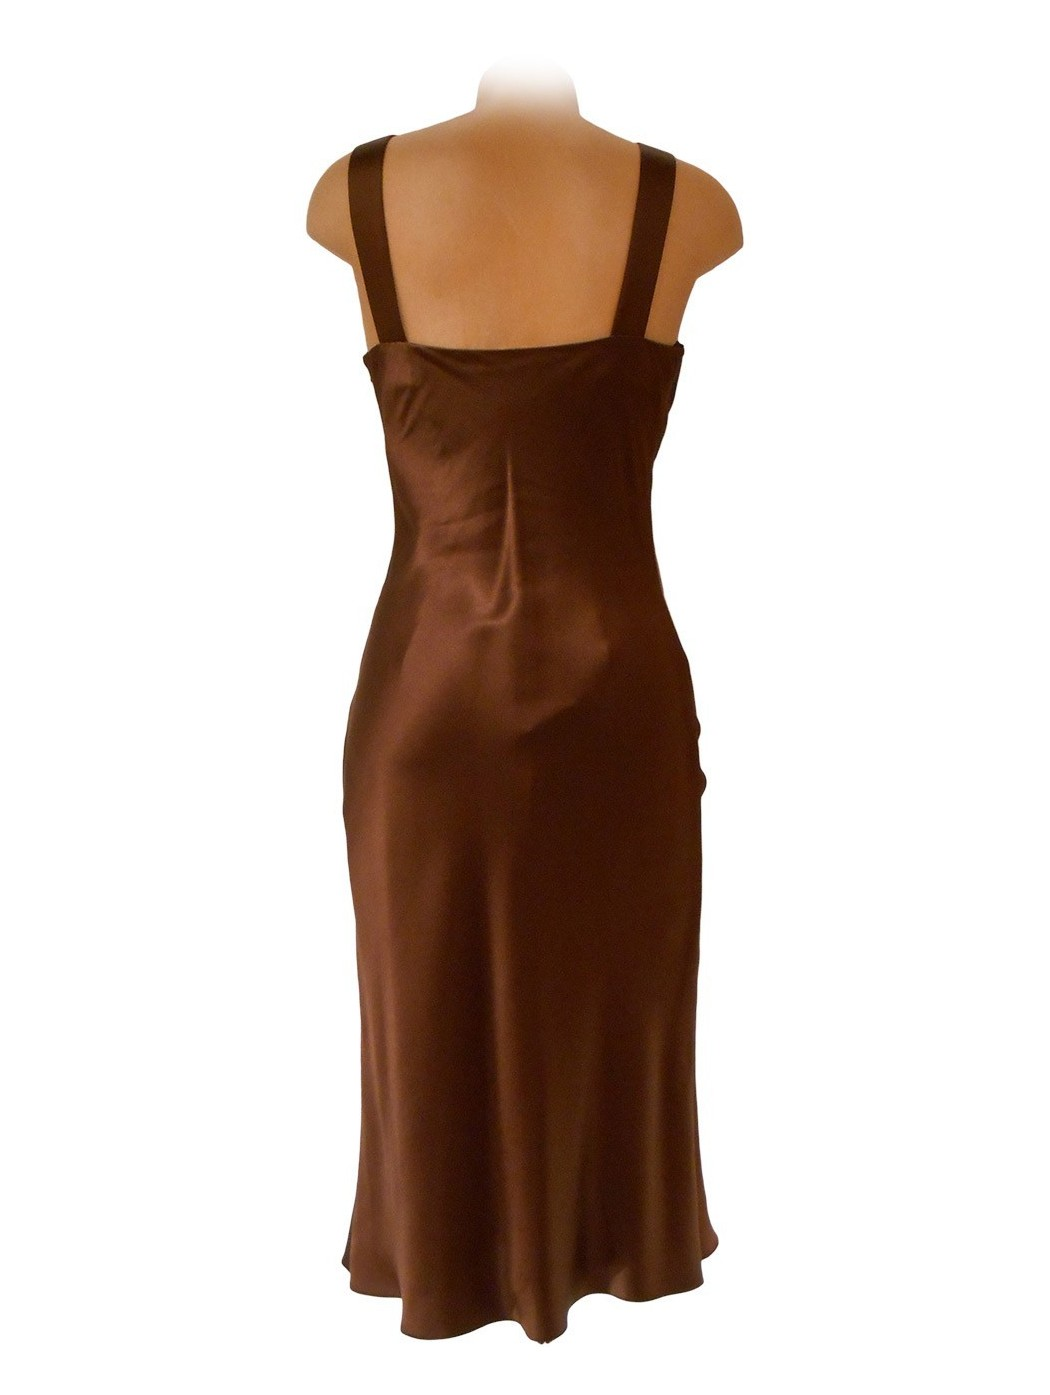 Luca Giordani satin dress